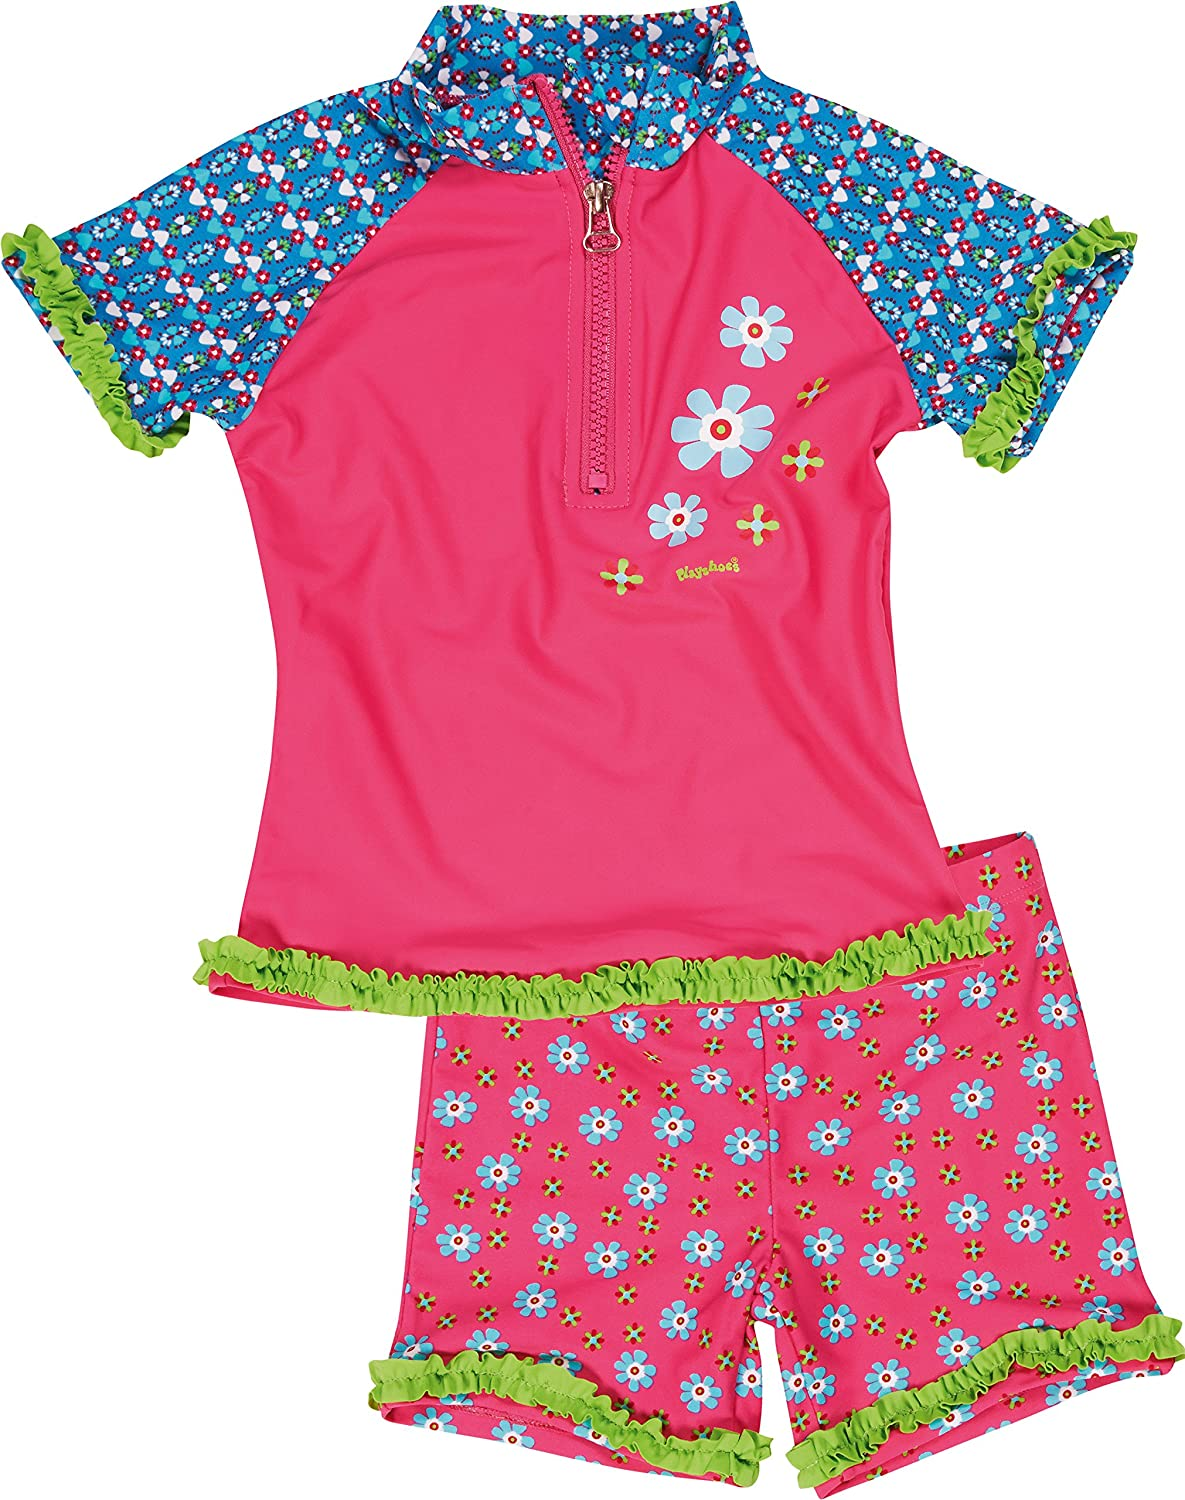 Playshoes Girl's UV Sun Protection 2 Piece Swim Set Flowers Swimsuit 460272